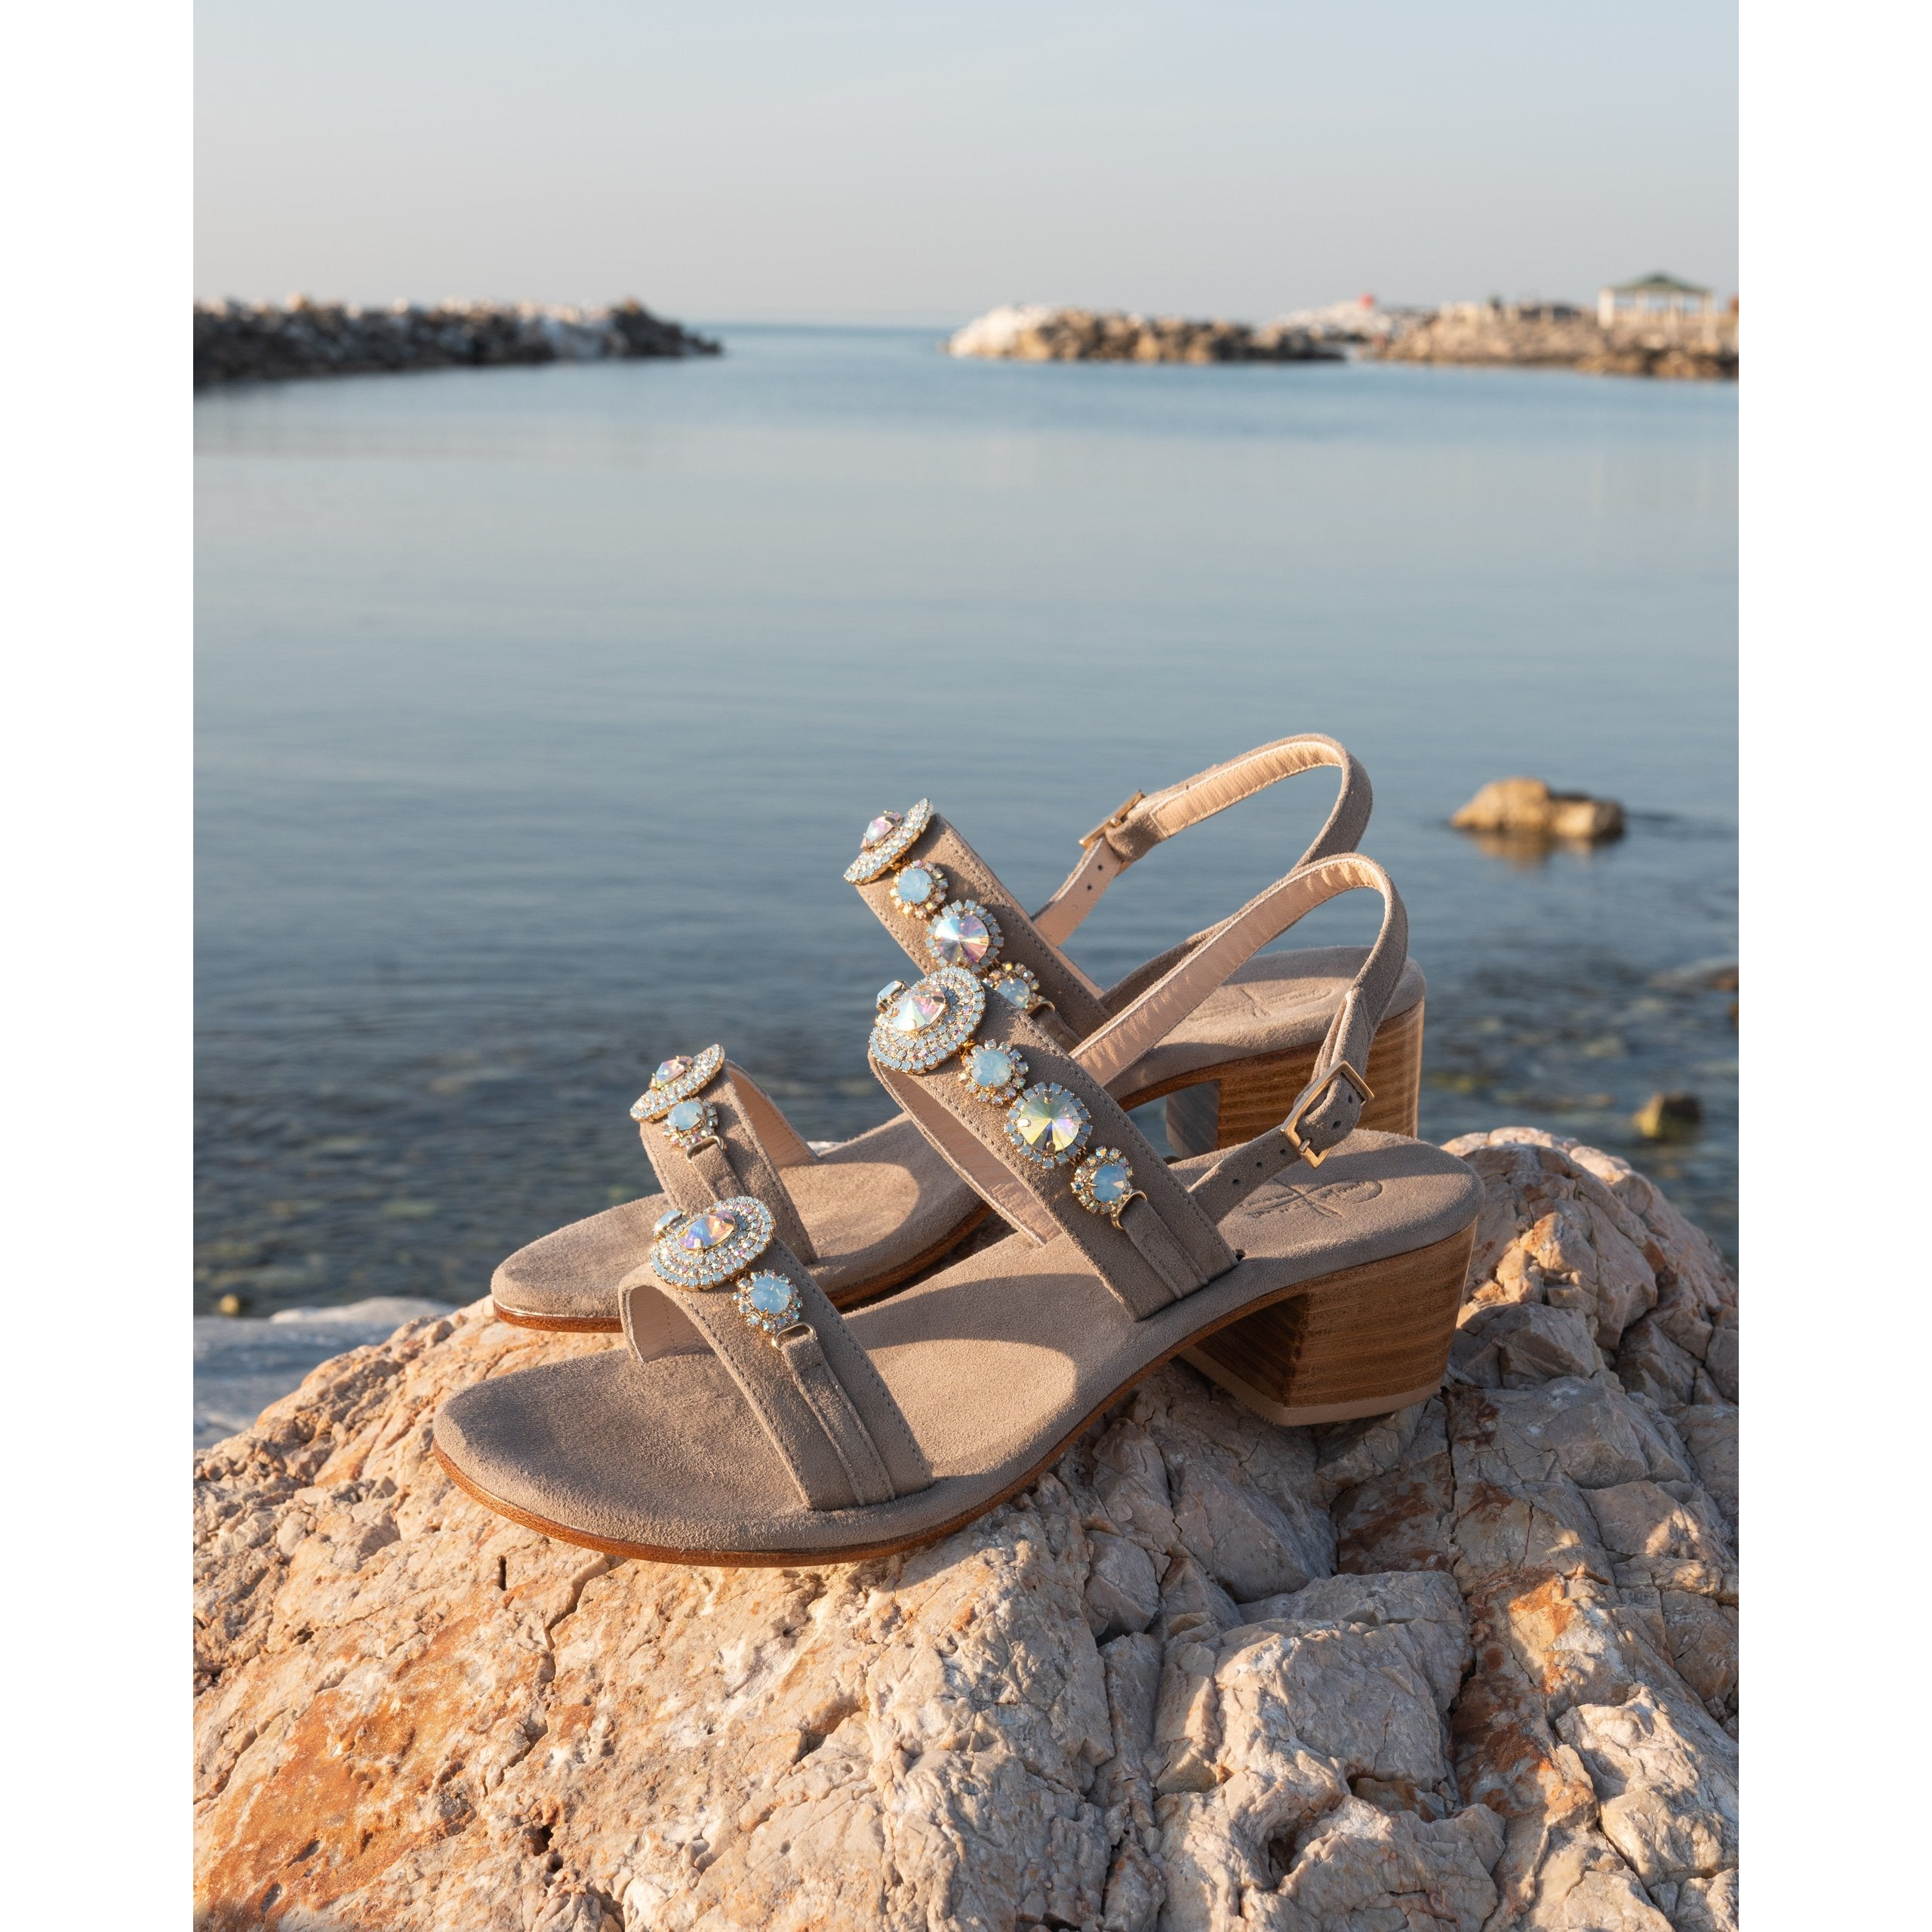 MPOWA2320 T50 Women Sandals - New Spring Summer 2020 Collection